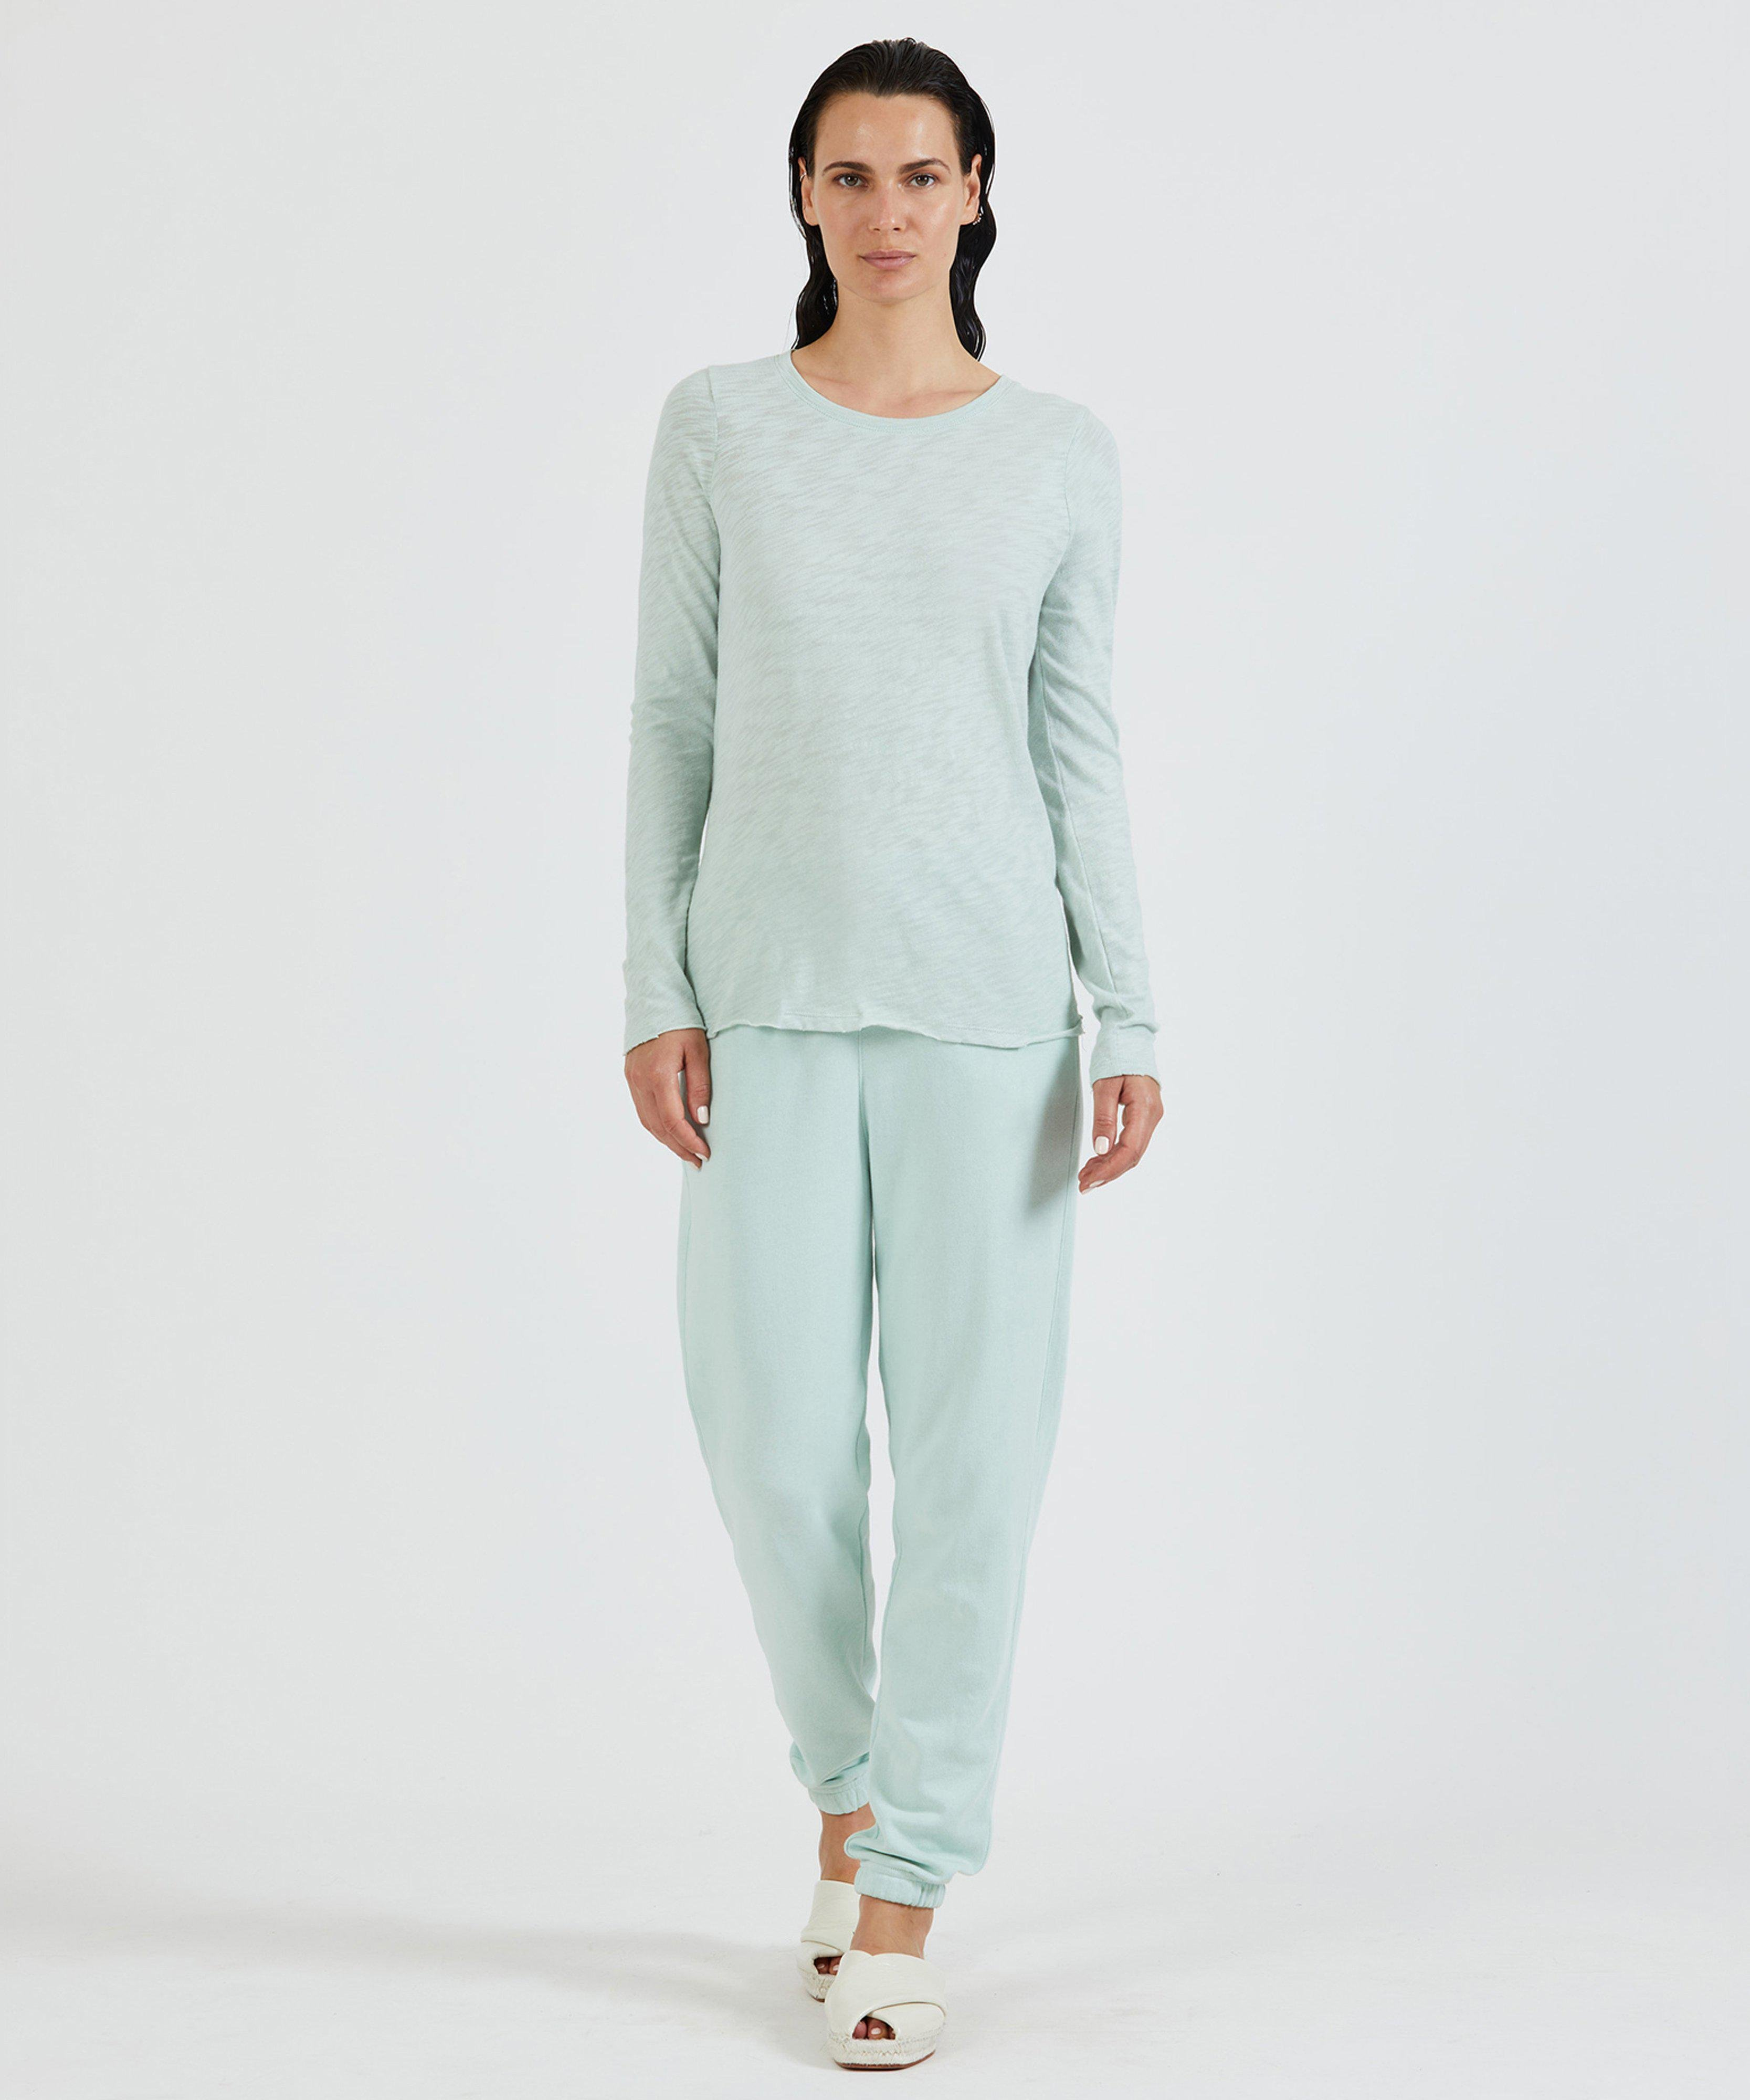 French Terry Pull-On Pant - Mint 3